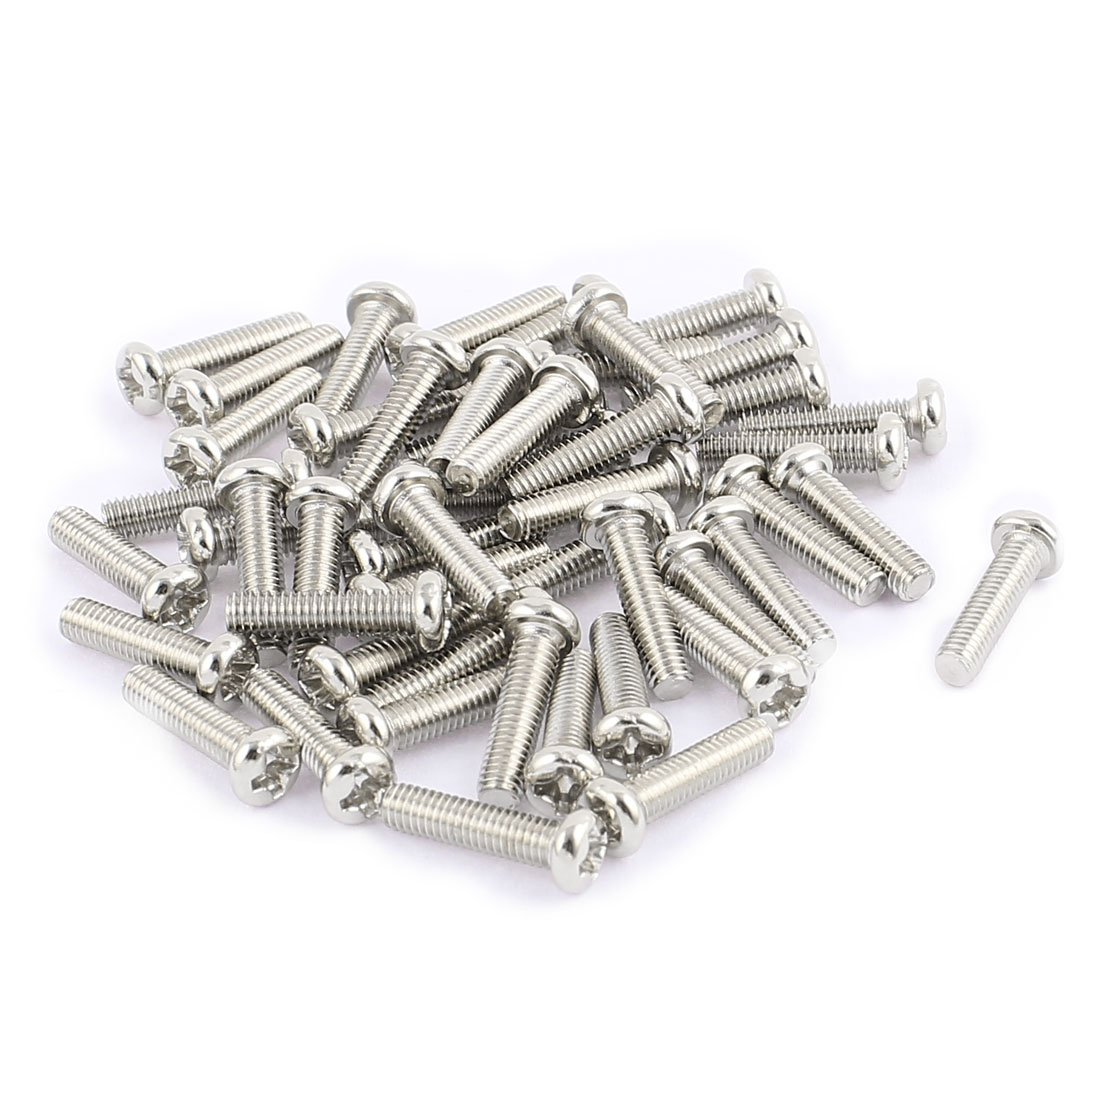 50 Pcs M3x12mm Stainless Steel Round Head Phillips Machine Screws Bolts